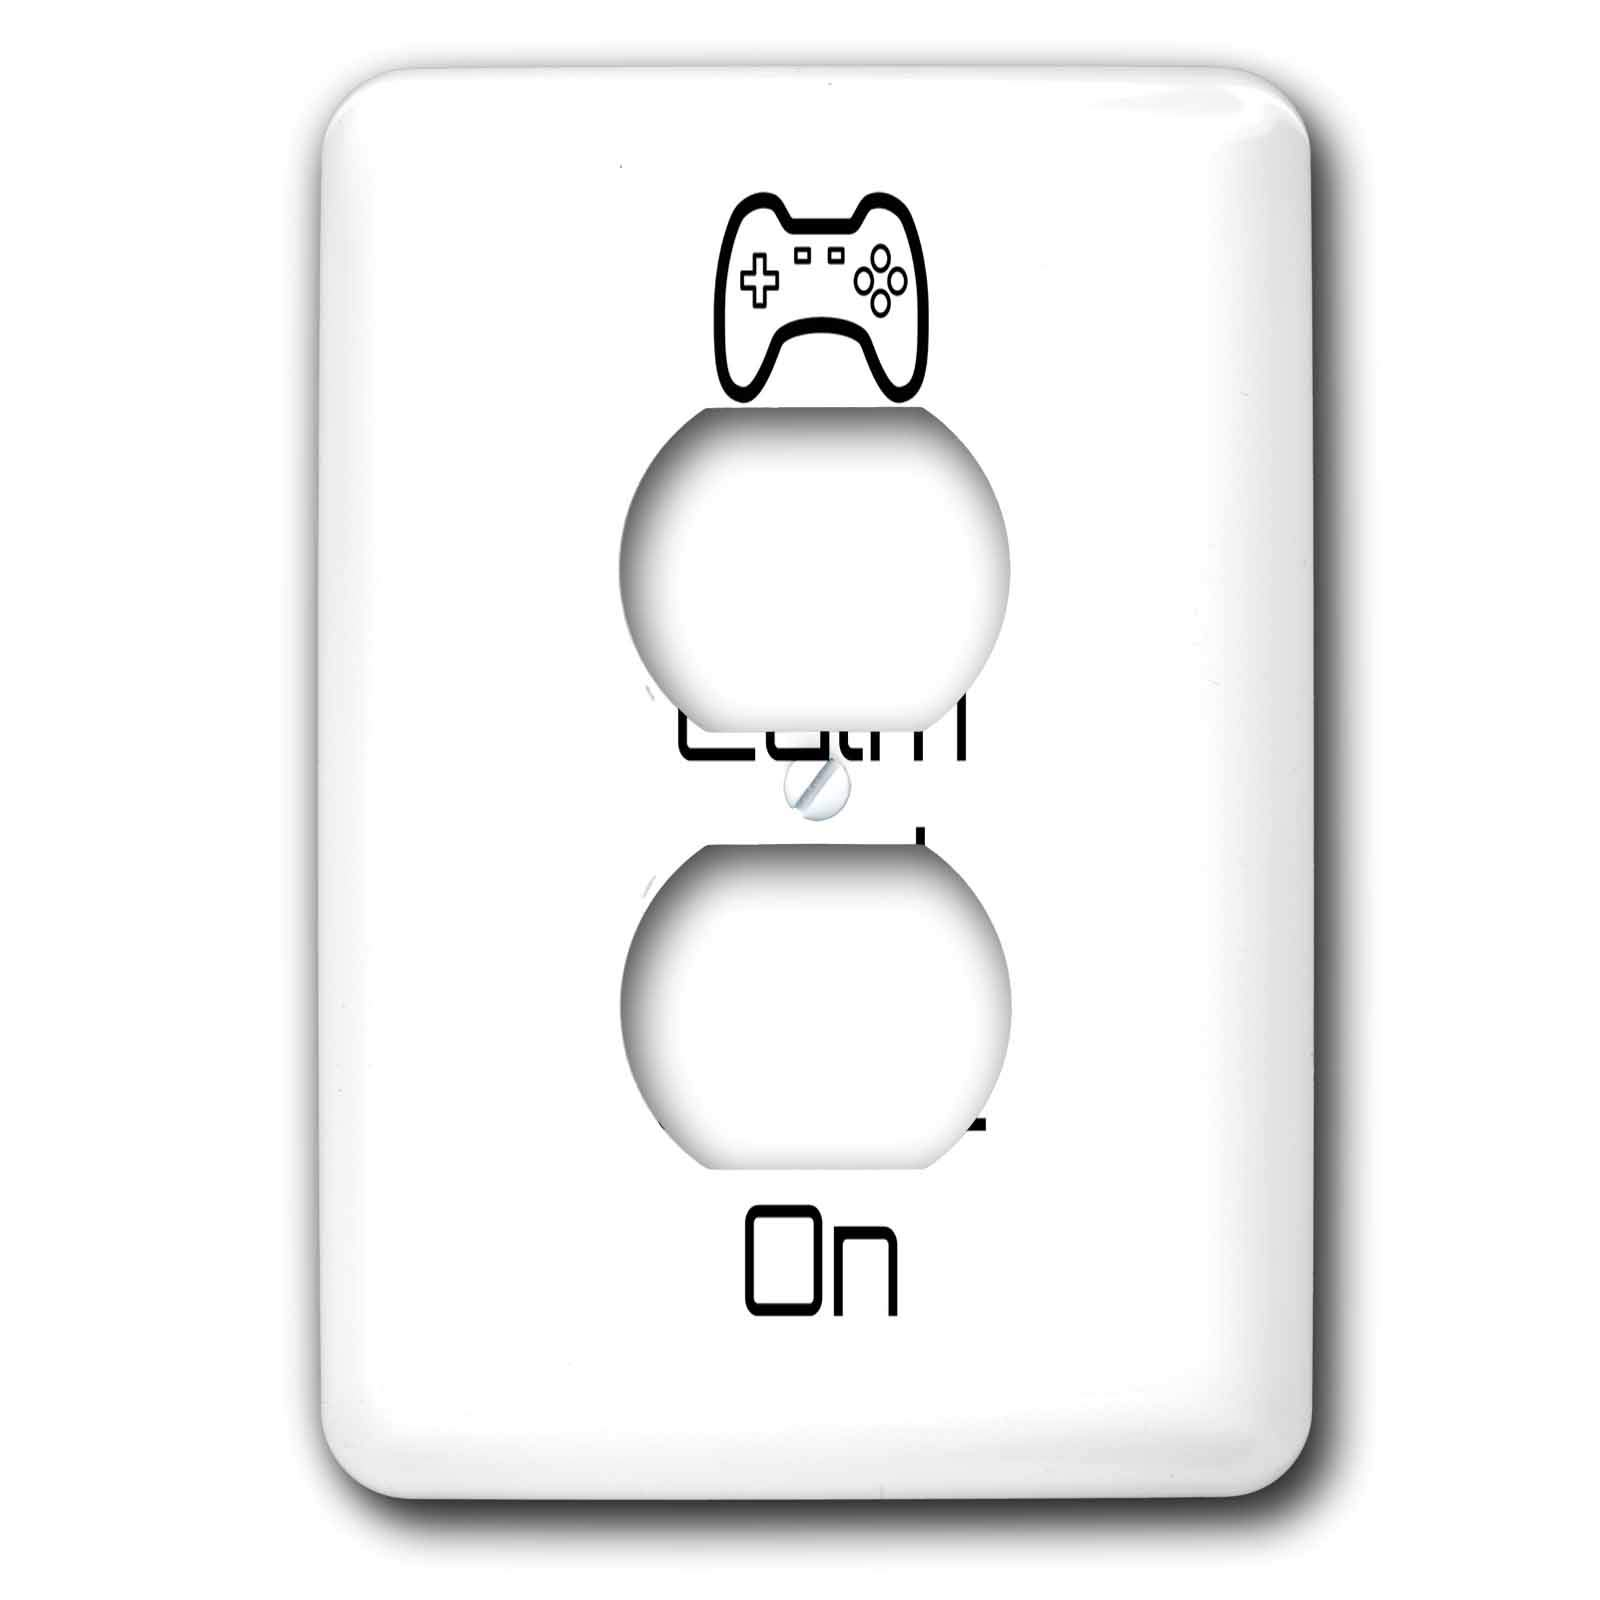 3dRose 3DRose Gabriella B - Quote - Image of Keep Calm And Game On Quote - Light Switch Covers - 2 plug outlet cover (lsp_291235_6)